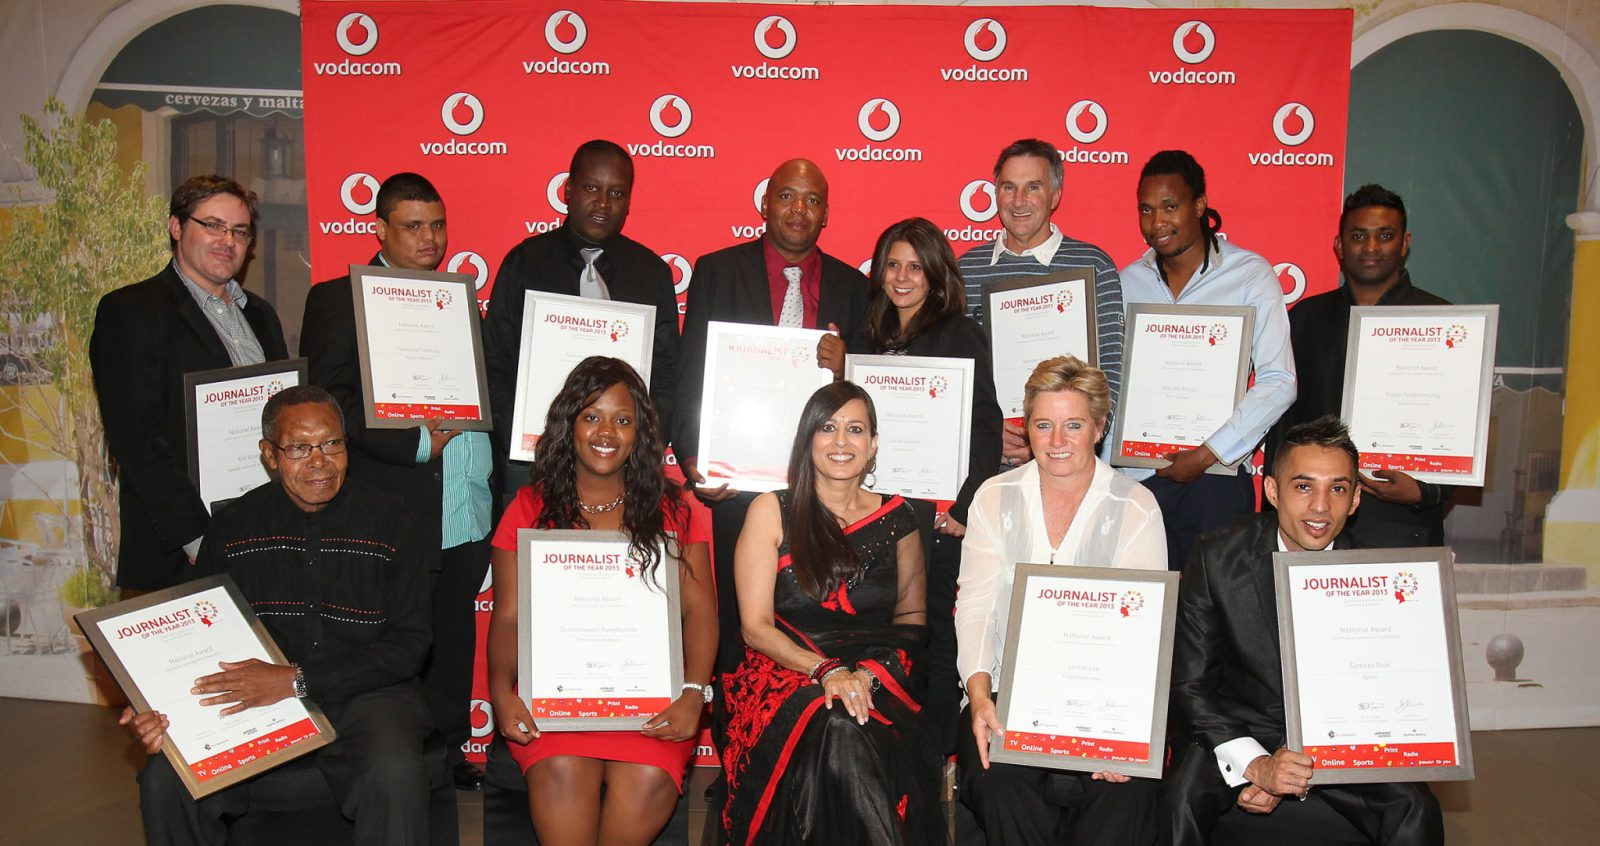 Vodacom Journalist of the Year Award 2016